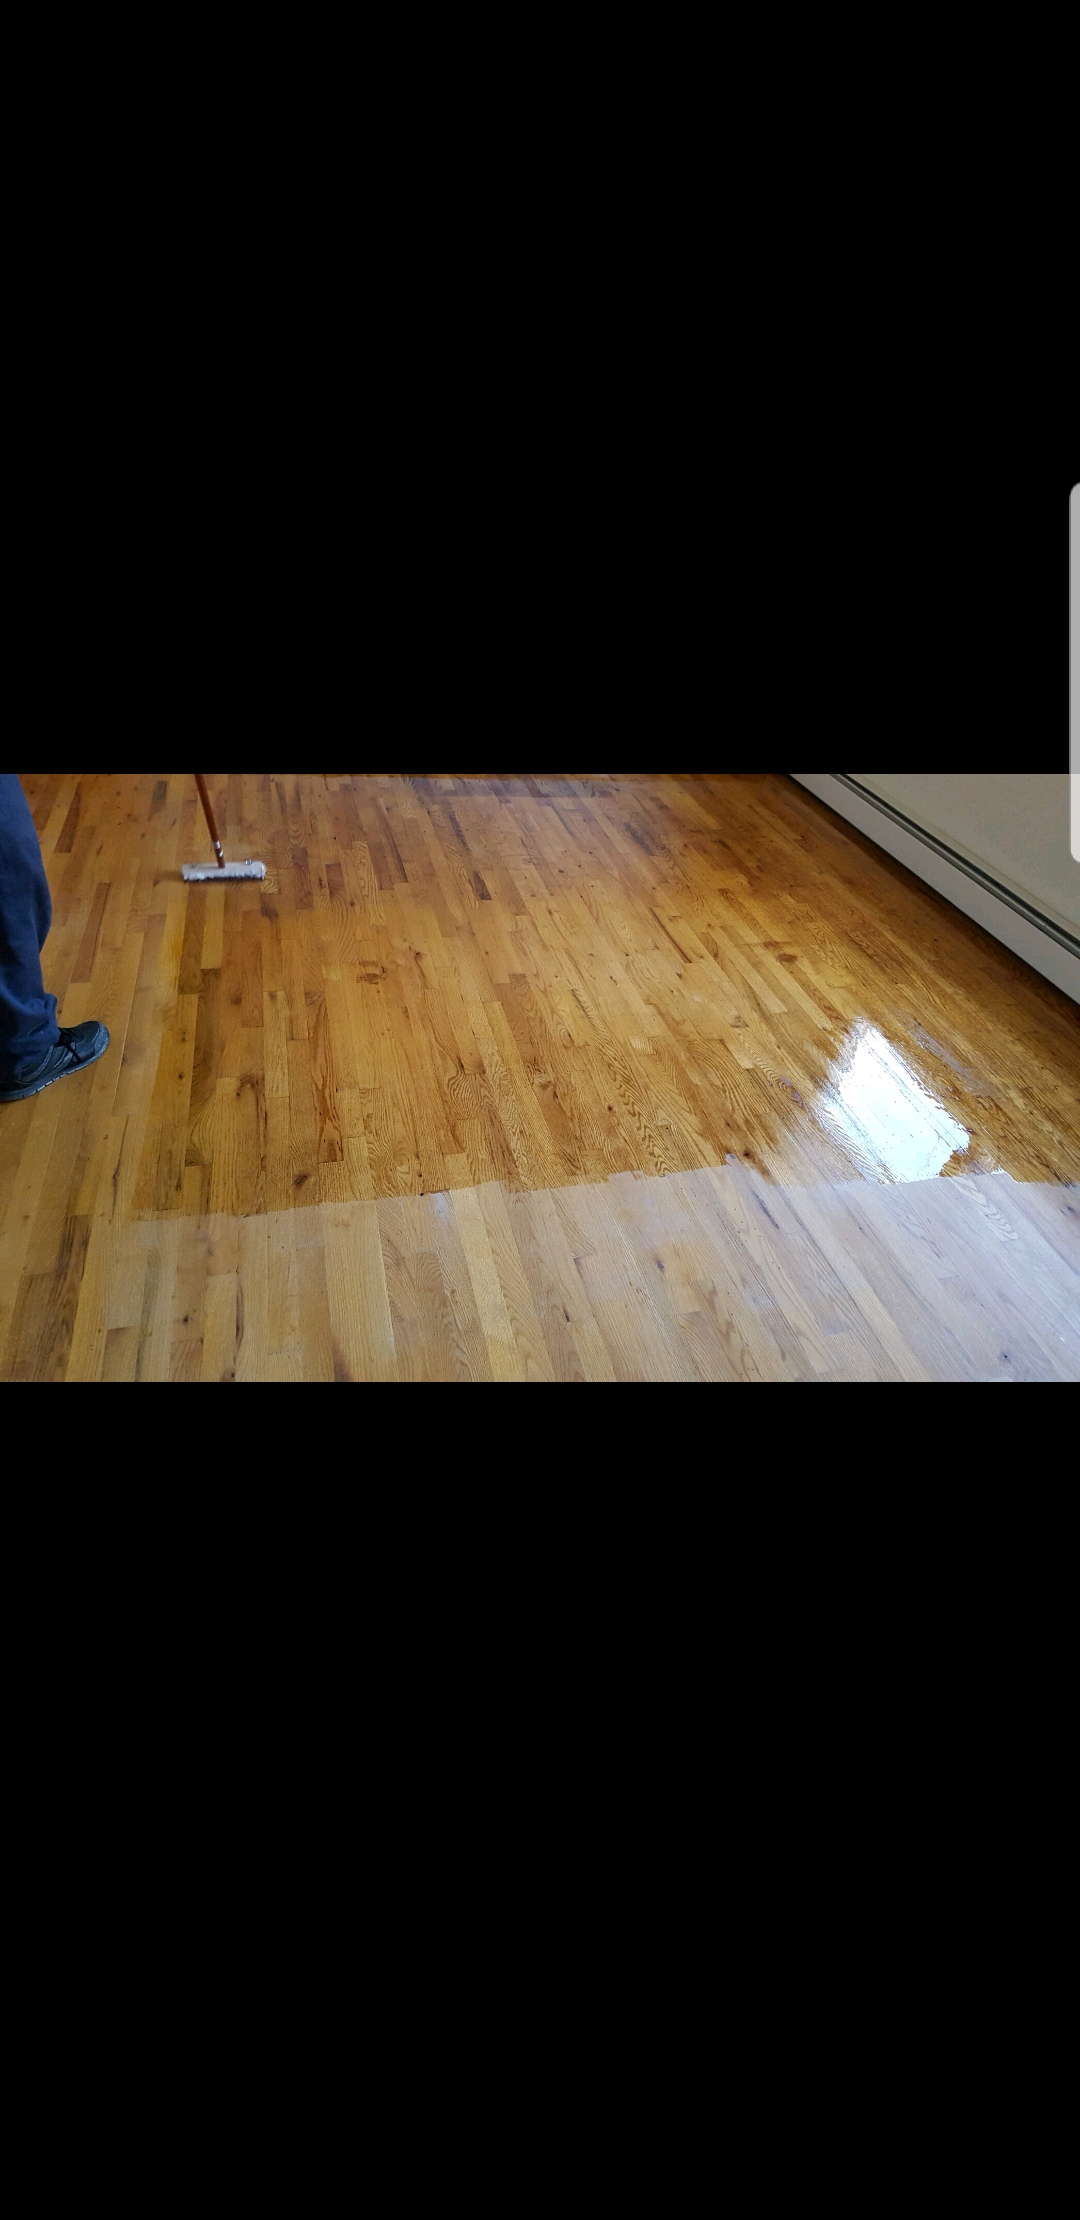 Iec Cleaning Services, LLC image 9